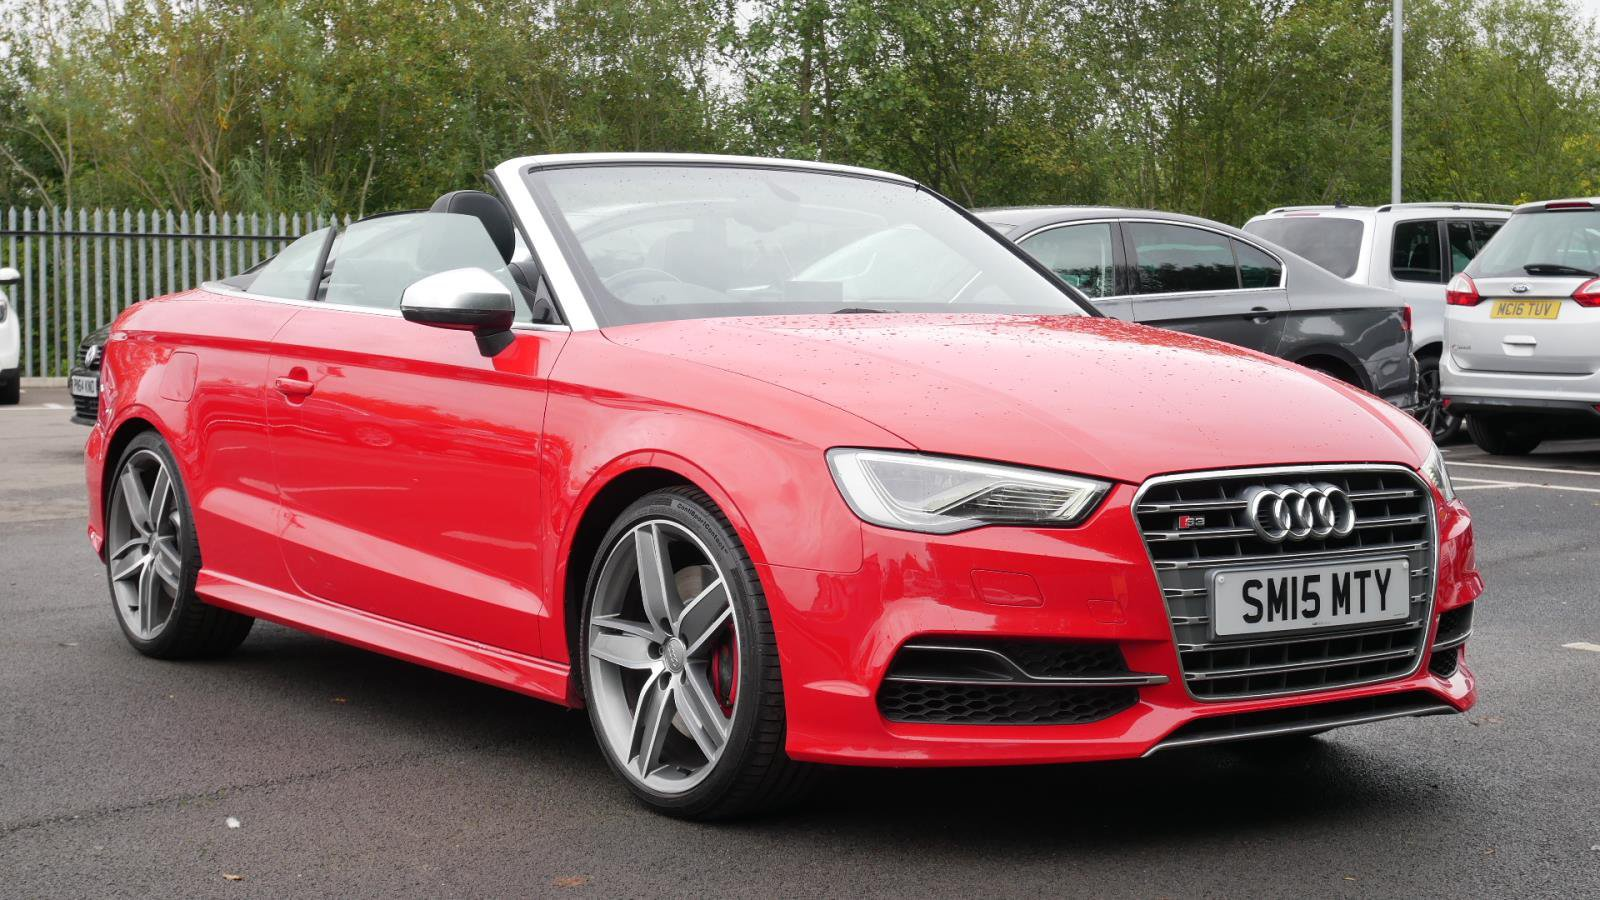 Used AUDI S14 S14 TFSI Quattro 14dr S Tronic   Red   SM14MTY ...   wakefield audi used cars